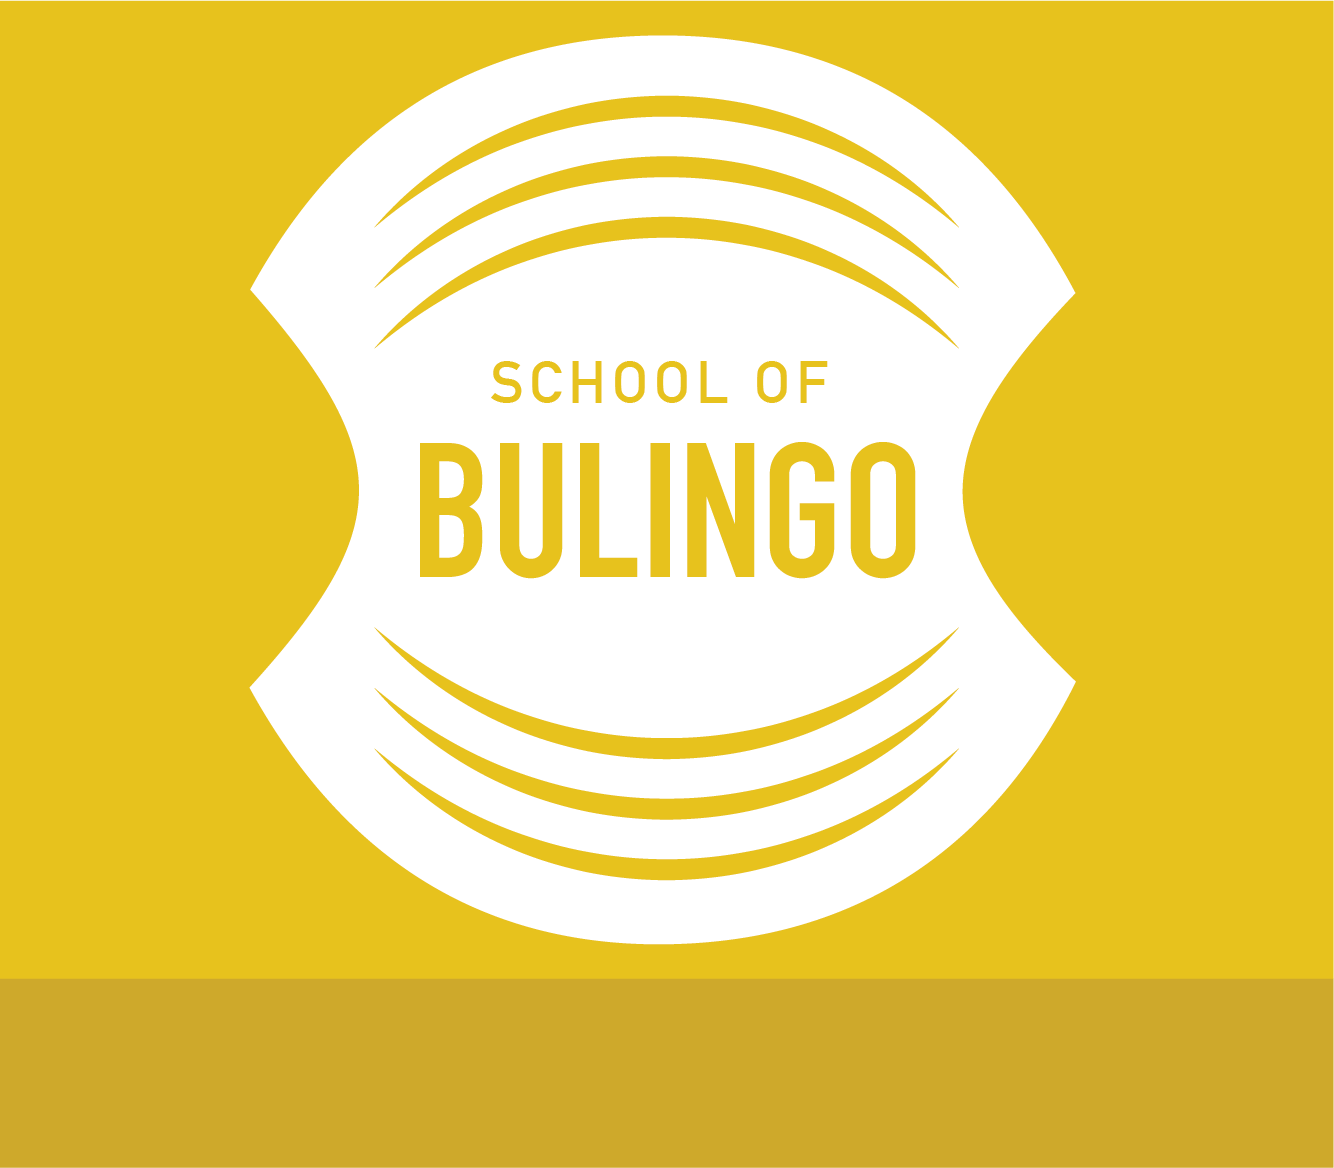 School of bulingo